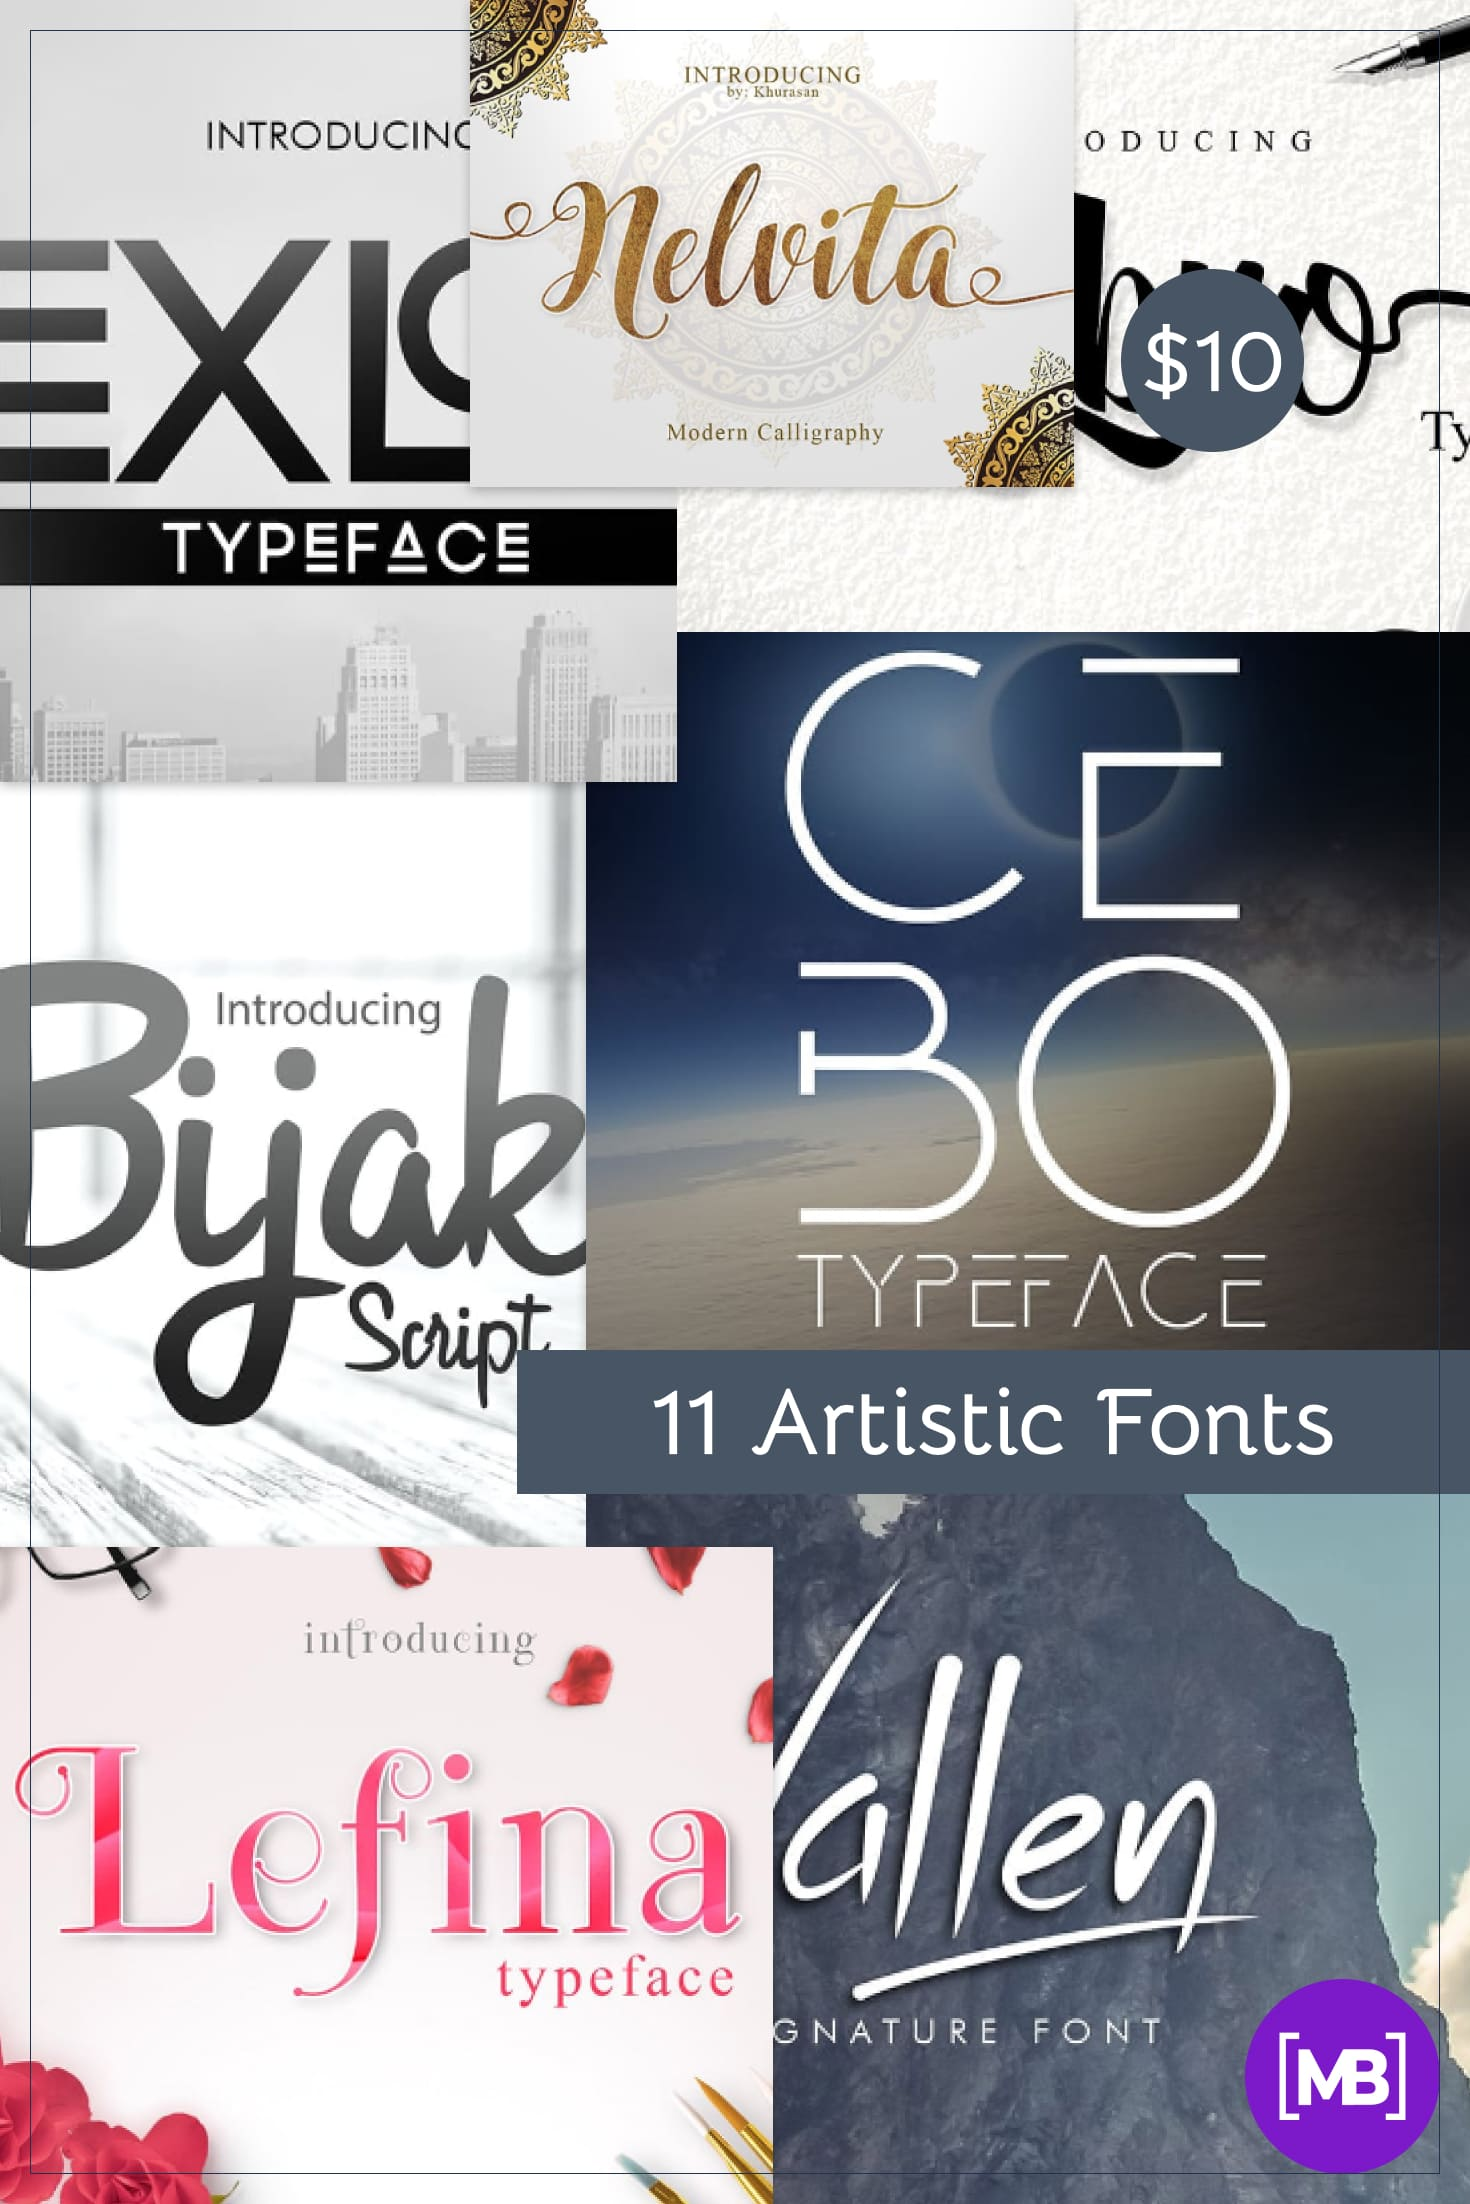 11 Artistic Fonts - Premium Quality Collection. Only $10. Collage Image.